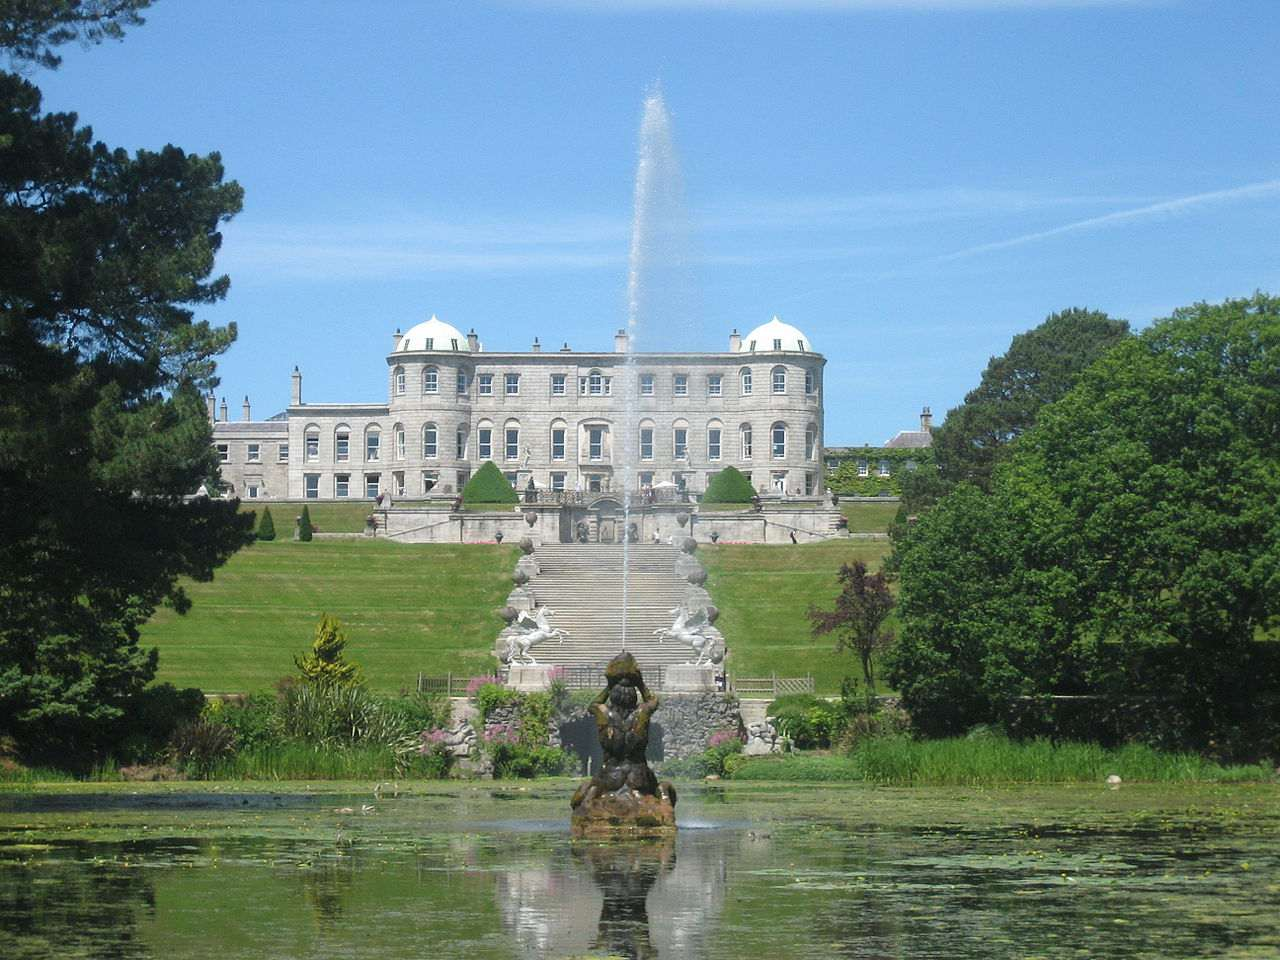 The fountain in the gardens at Powerscourt Estate in County Wicklow